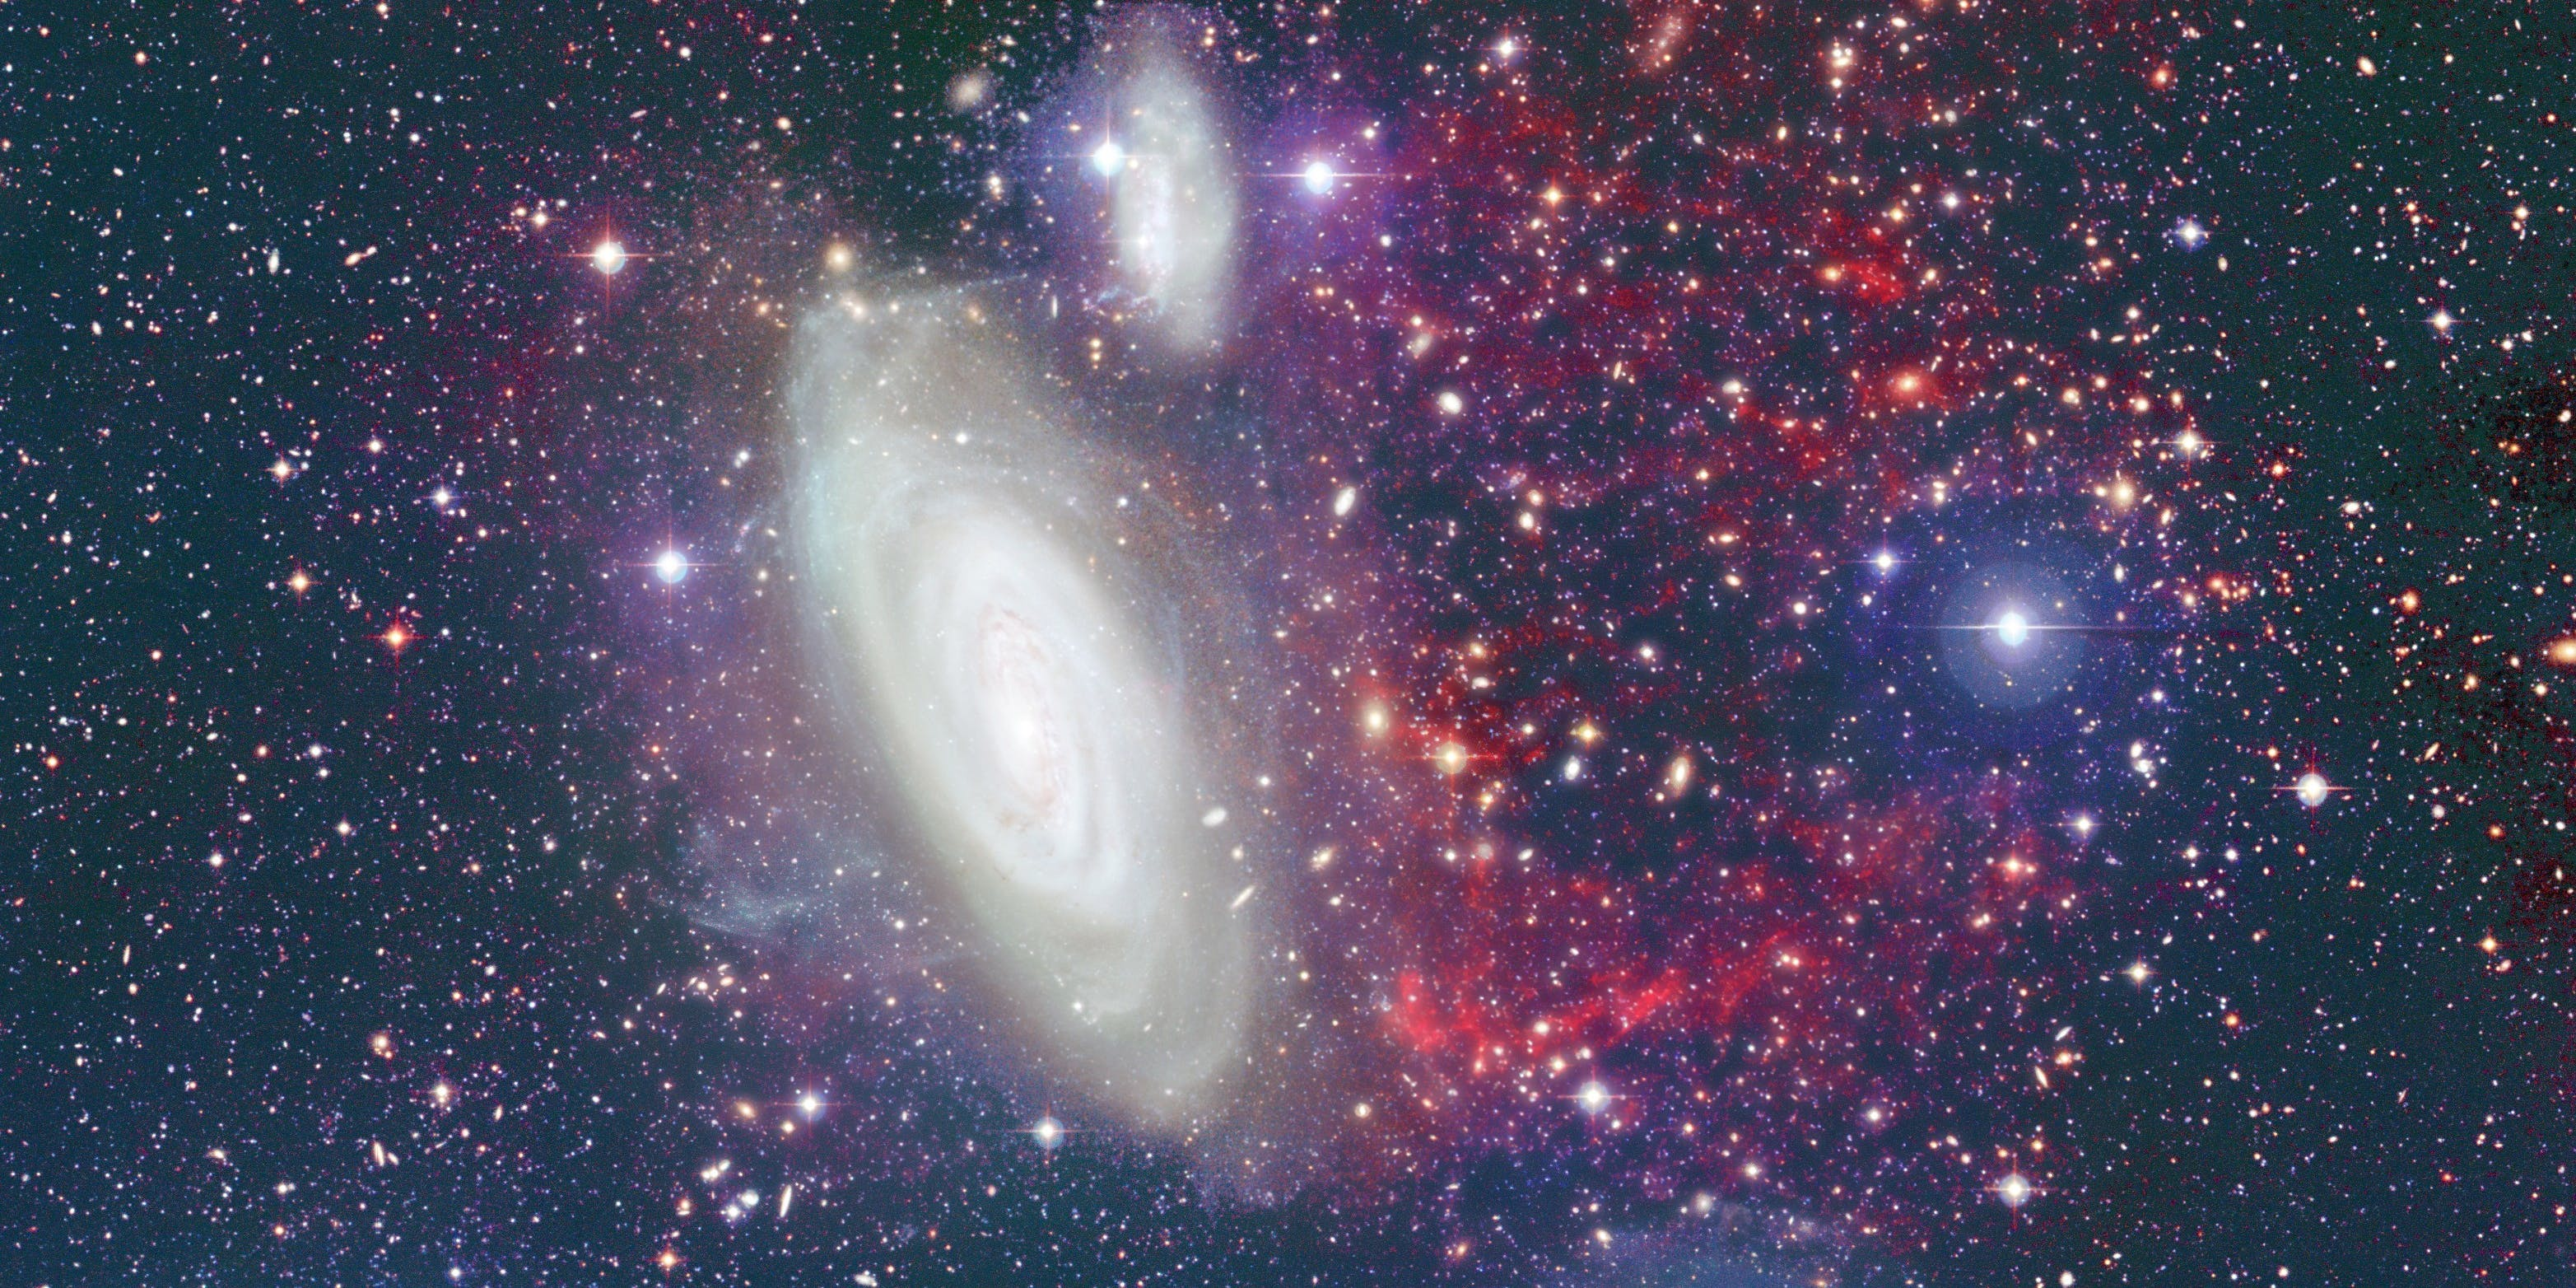 The foreground galaxy is NGC 4569 of the Virgo cluster.